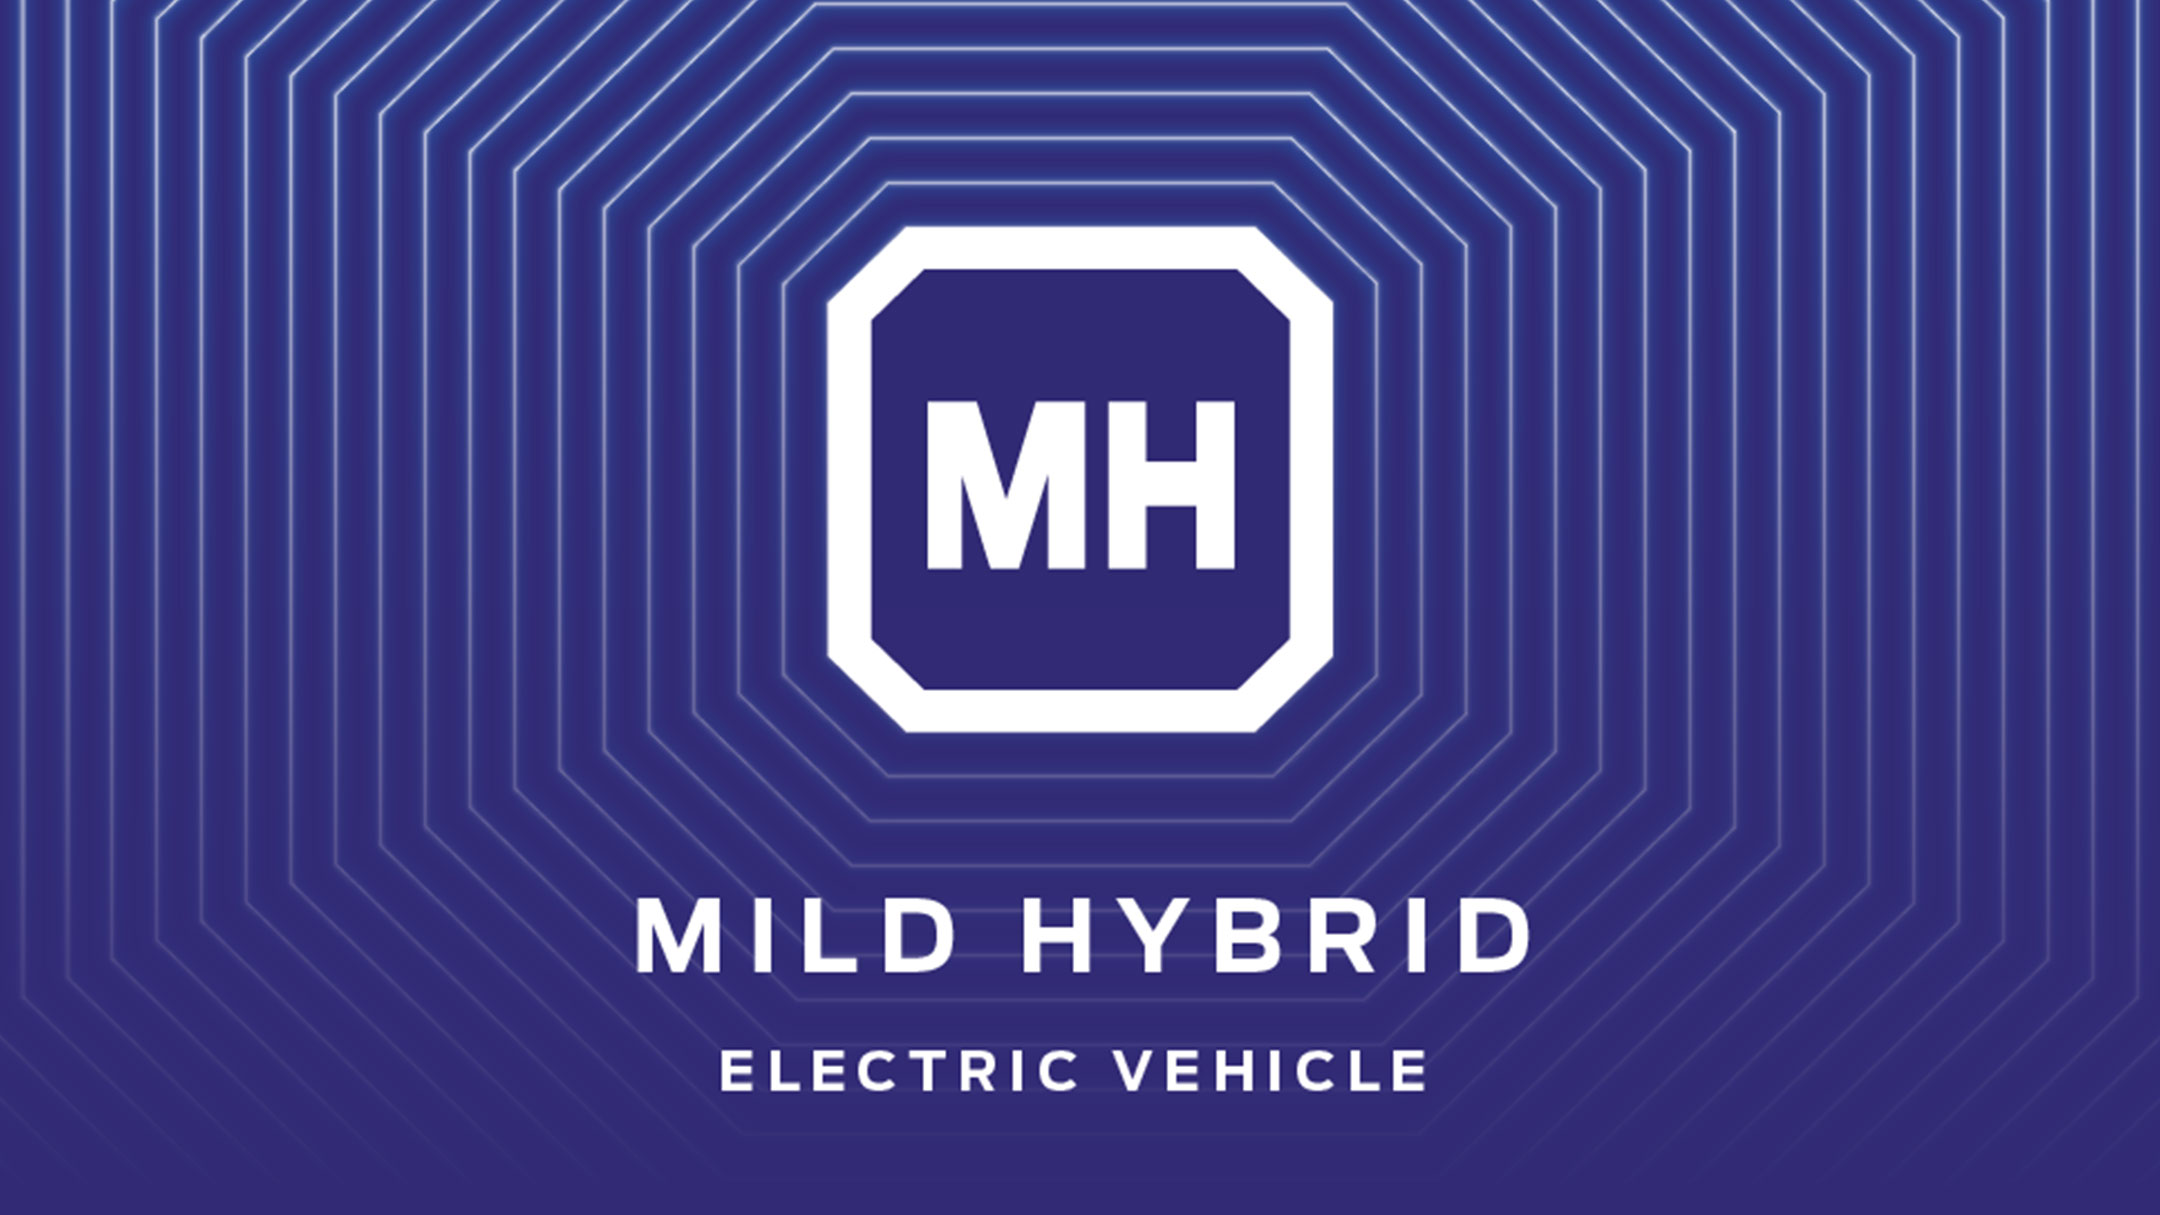 //transit.stoneacremotorgroup.co.uk/Mild-Hybrid%20Electric%20Vehicles